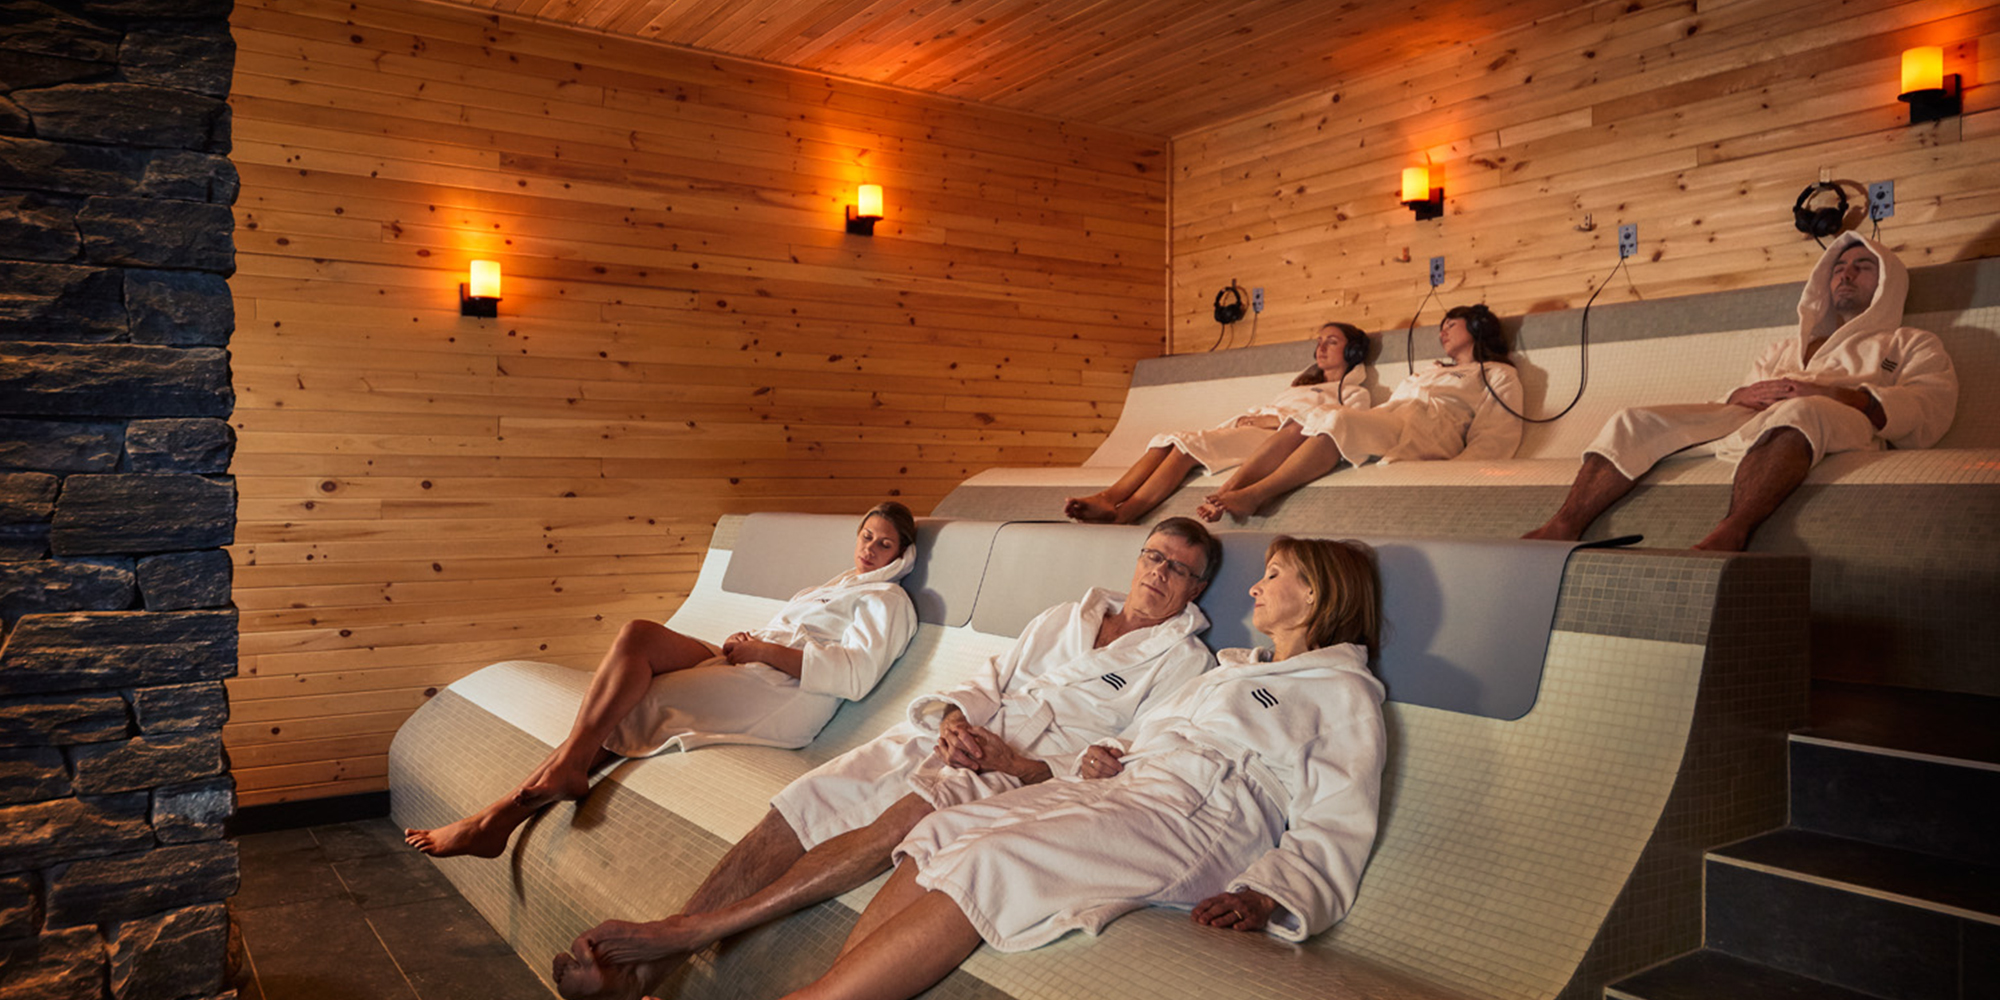 photos and videos thermea saunas massages body. Black Bedroom Furniture Sets. Home Design Ideas